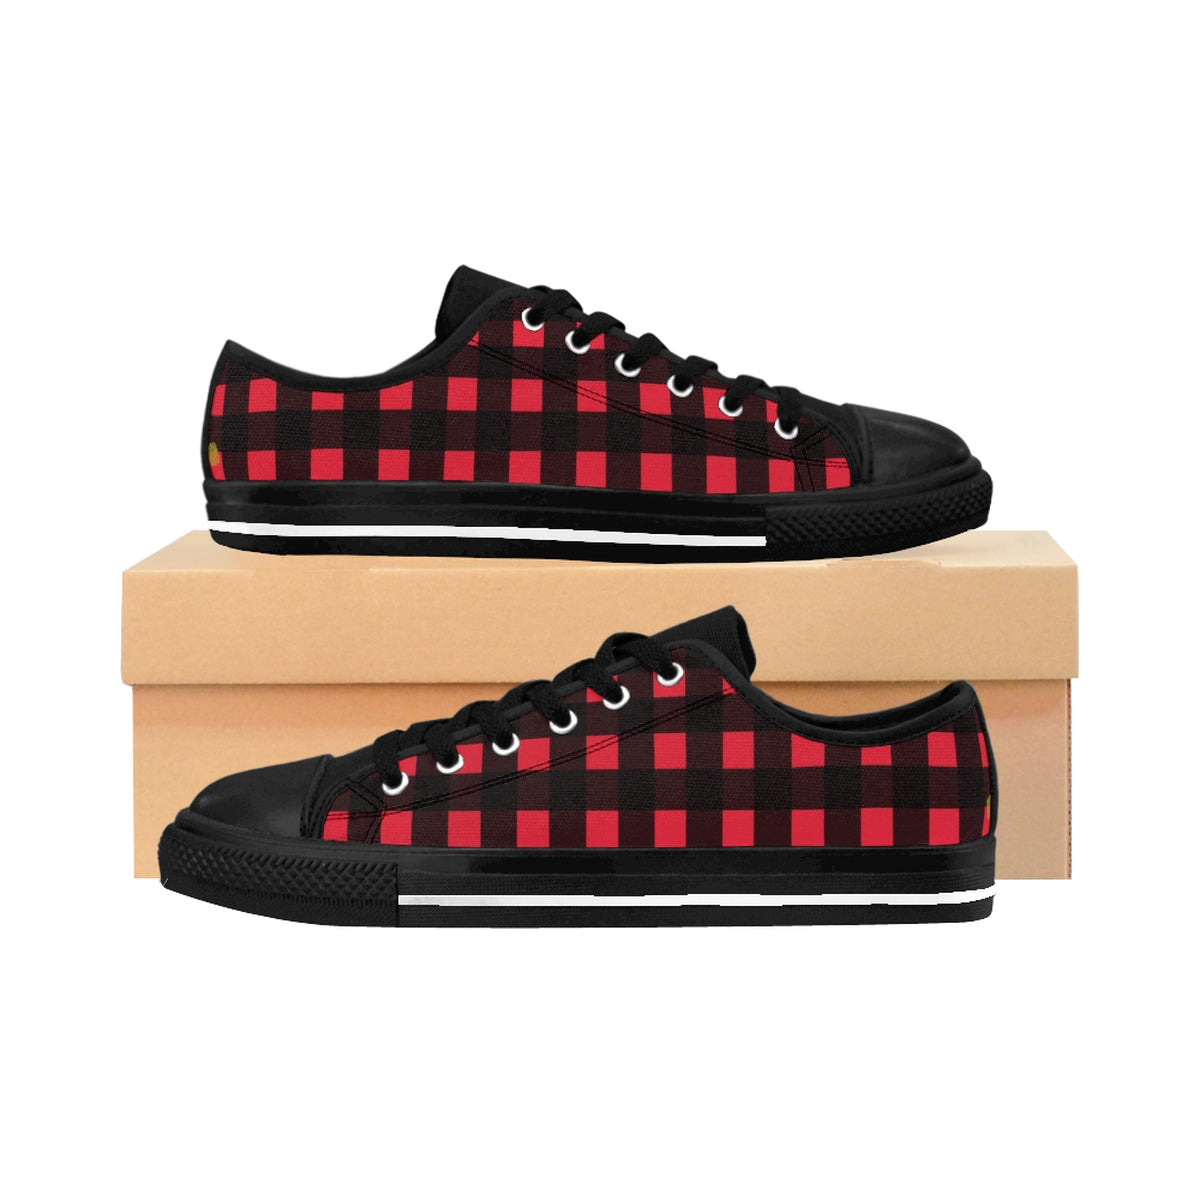 Buffalo Red Plaid Print Designer Men's Low Top Sneakers Running Shoes (US Size: 6-14)-Men's Low Top Sneakers-Black-US 9-Heidi Kimura Art LLC